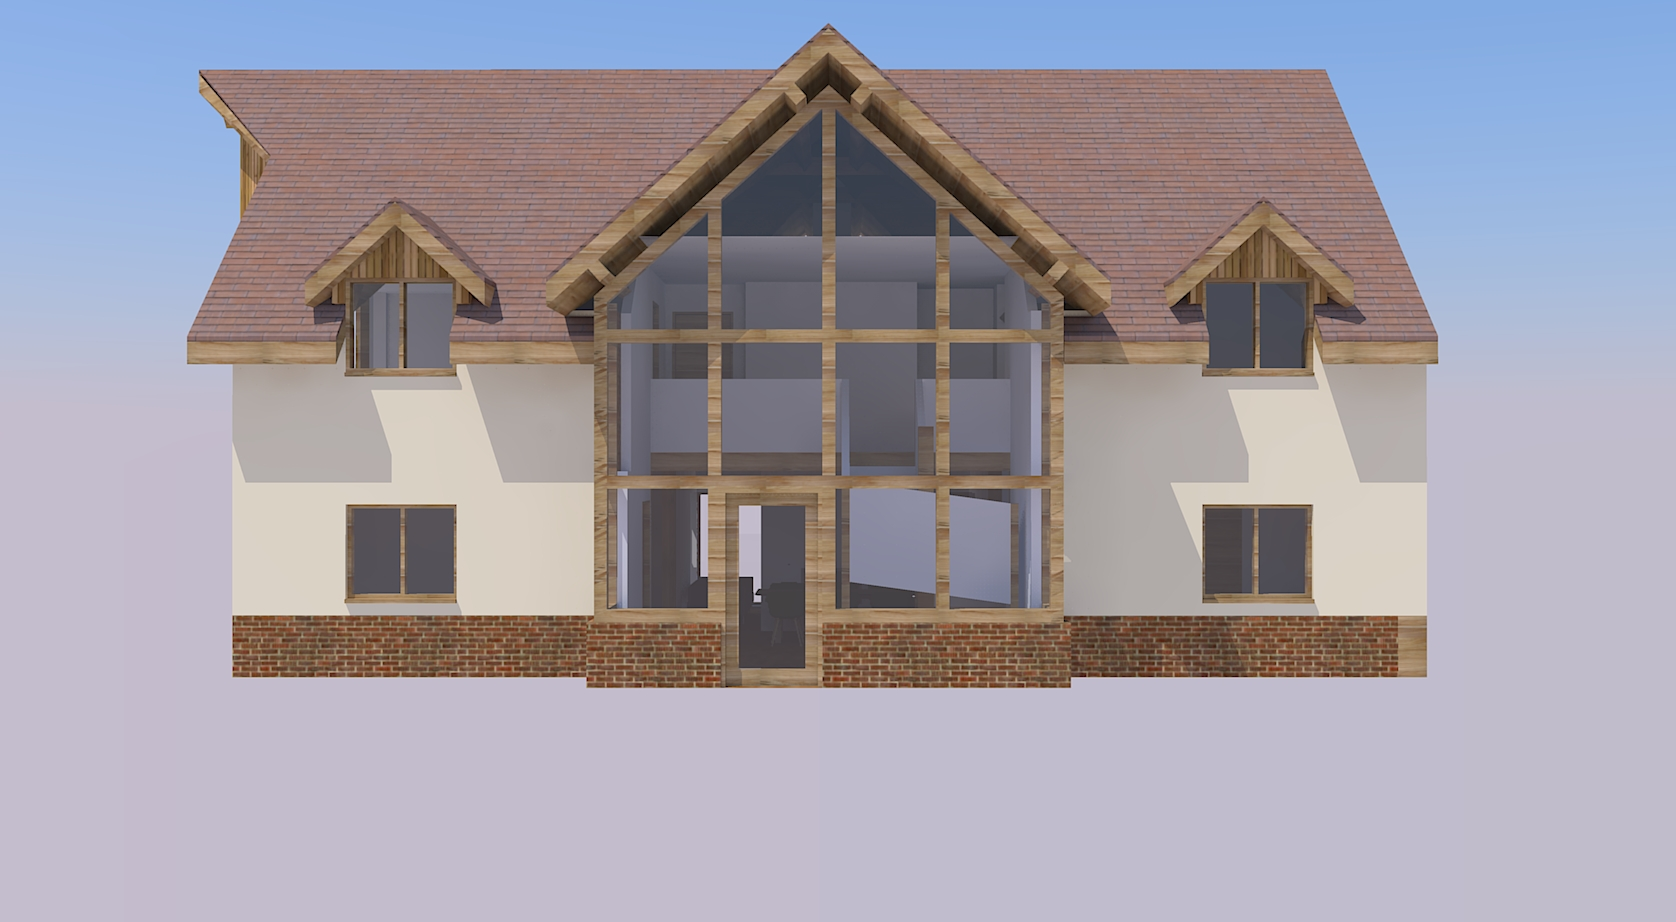 Front Elevation Planning Permission : New house in hampshire obtains planning permission